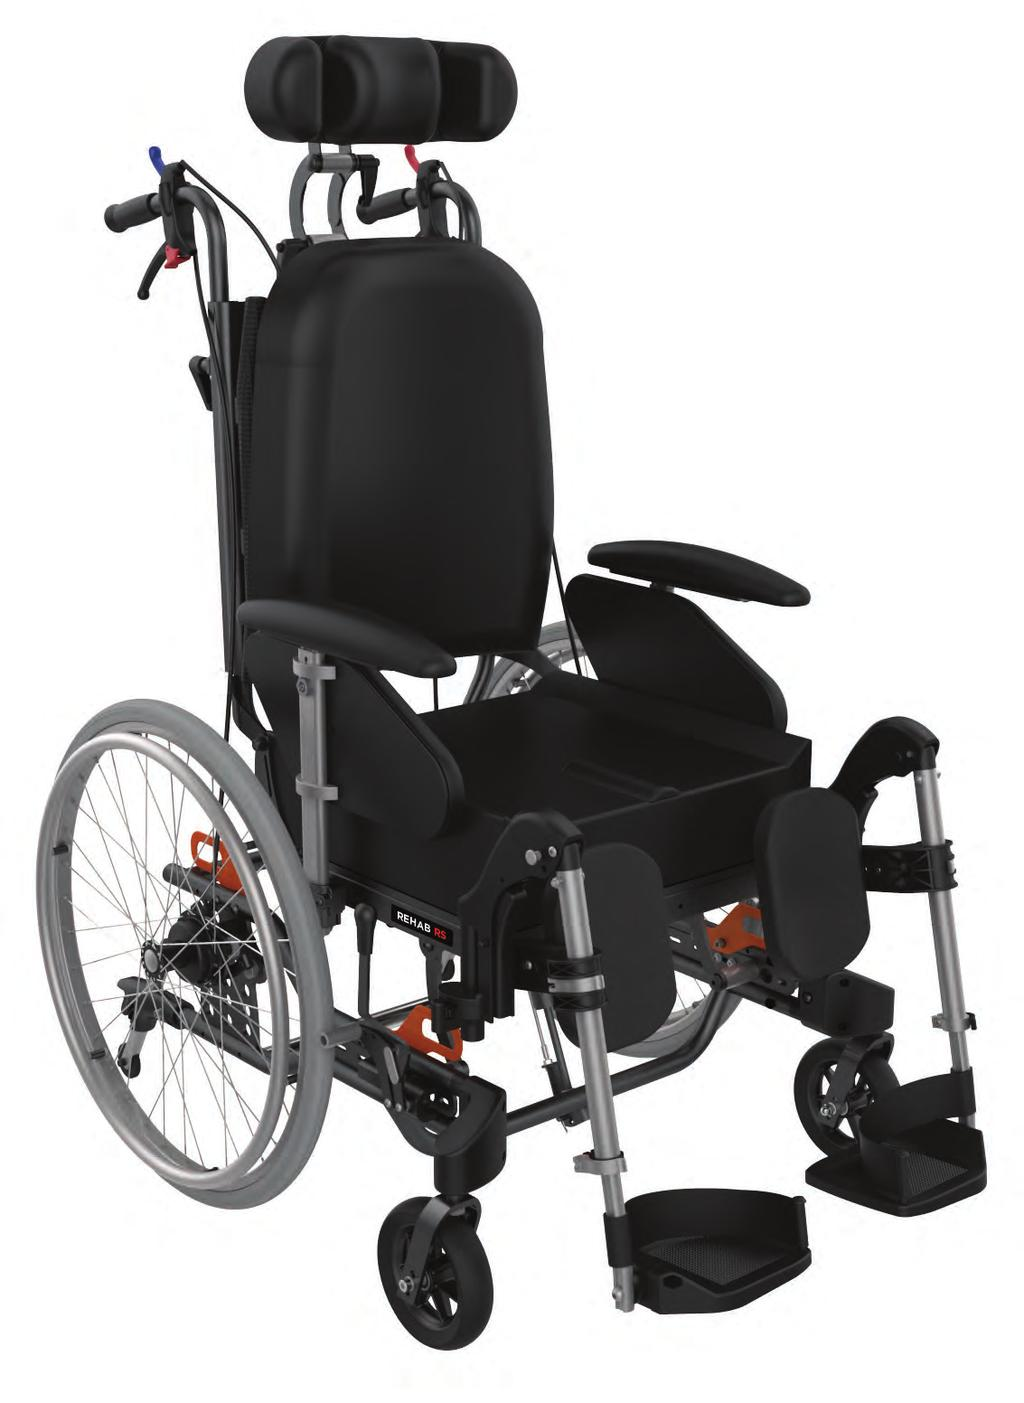 REHAB RS Classic Tilt-In-Space The REHAB RS is an ideal solution for Aged Care and Community users who requires increased postural support and bodyweight redistribution.